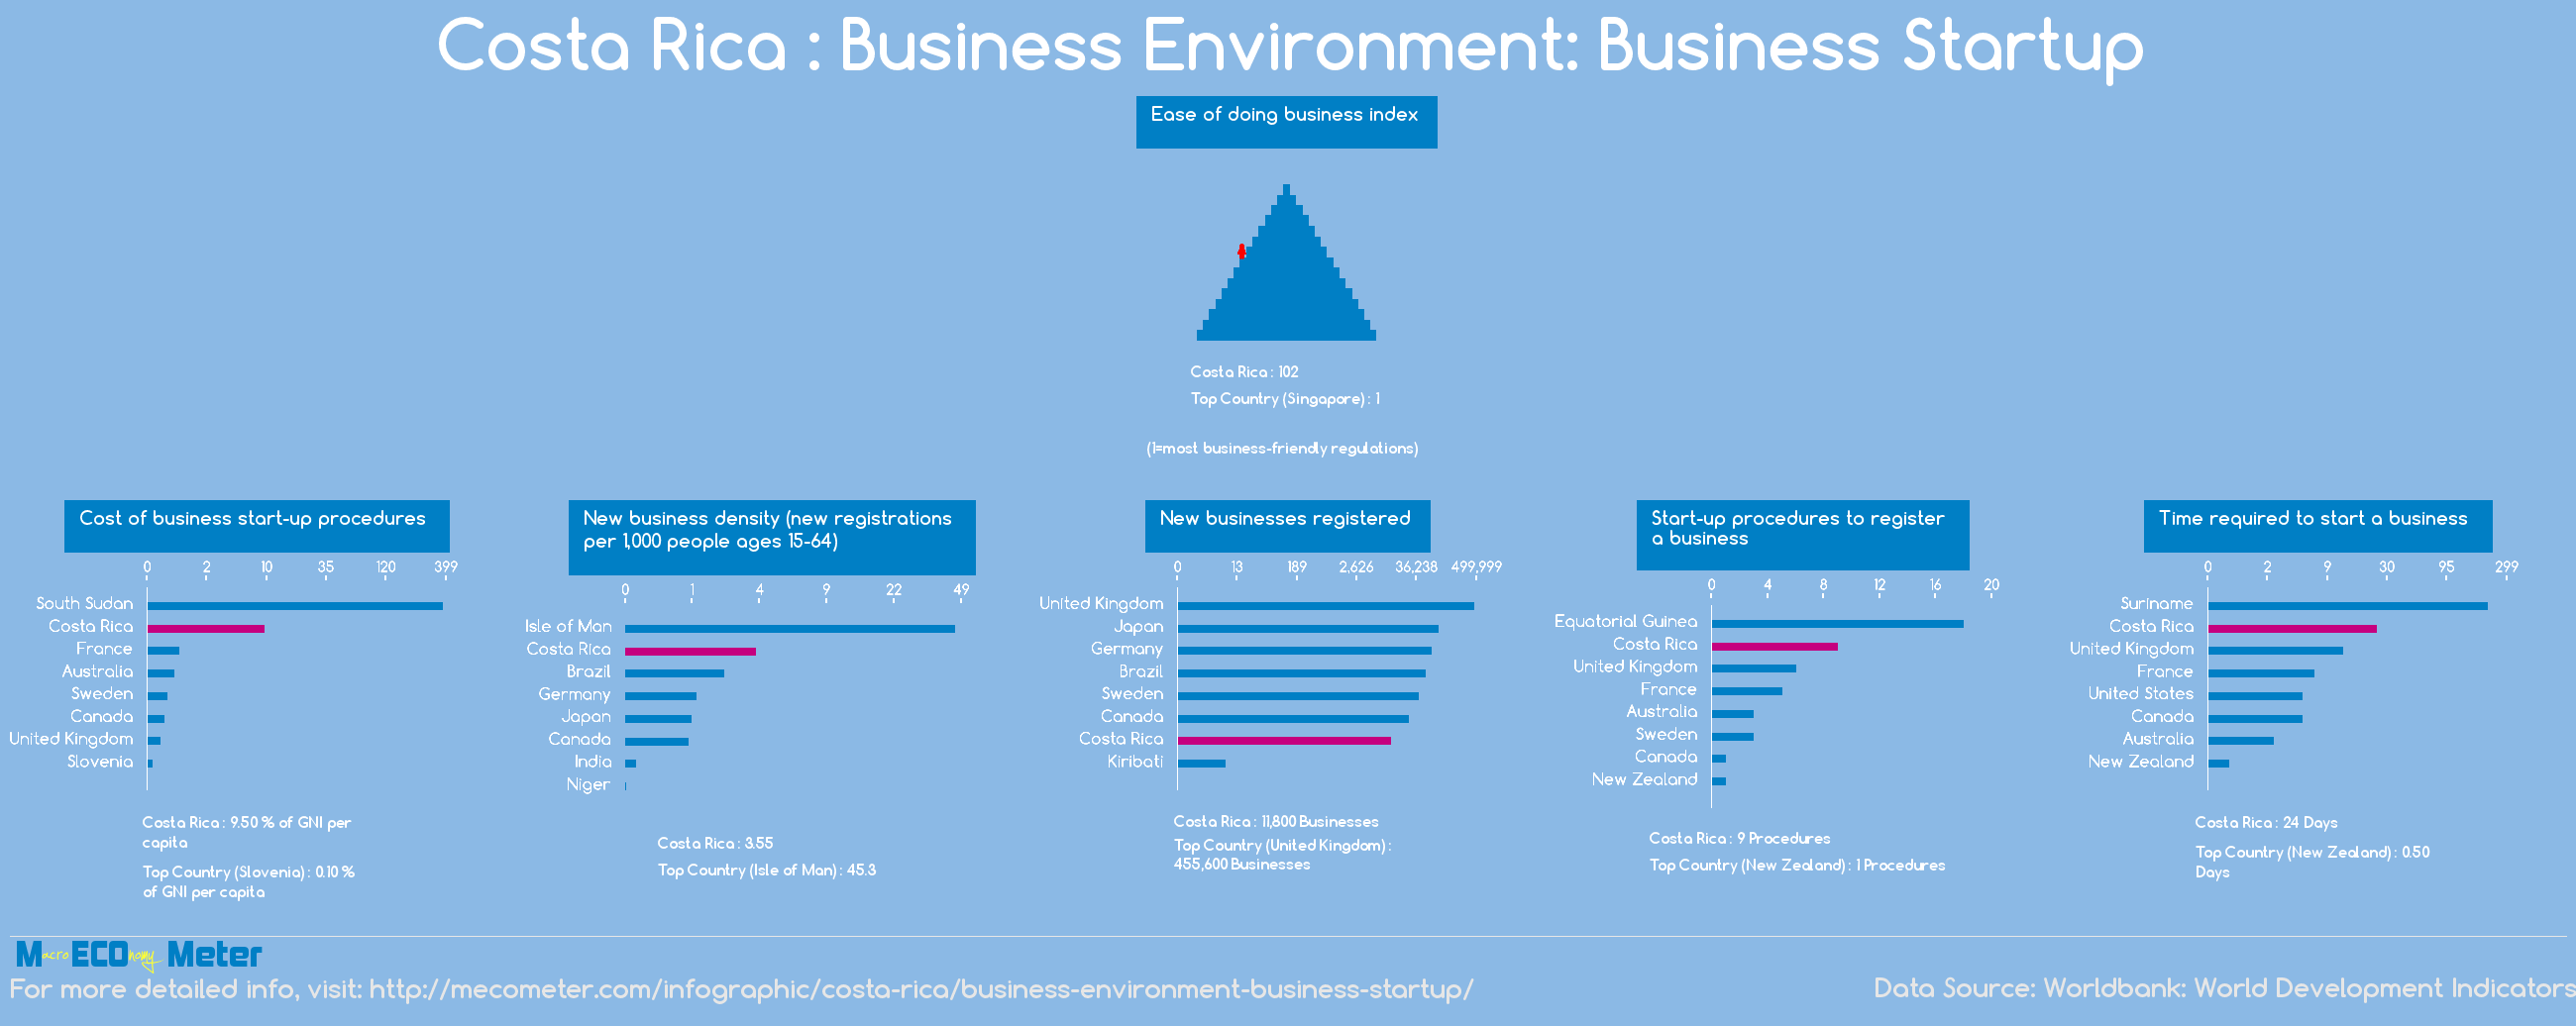 Costa Rica : Business Environment: Business Startup